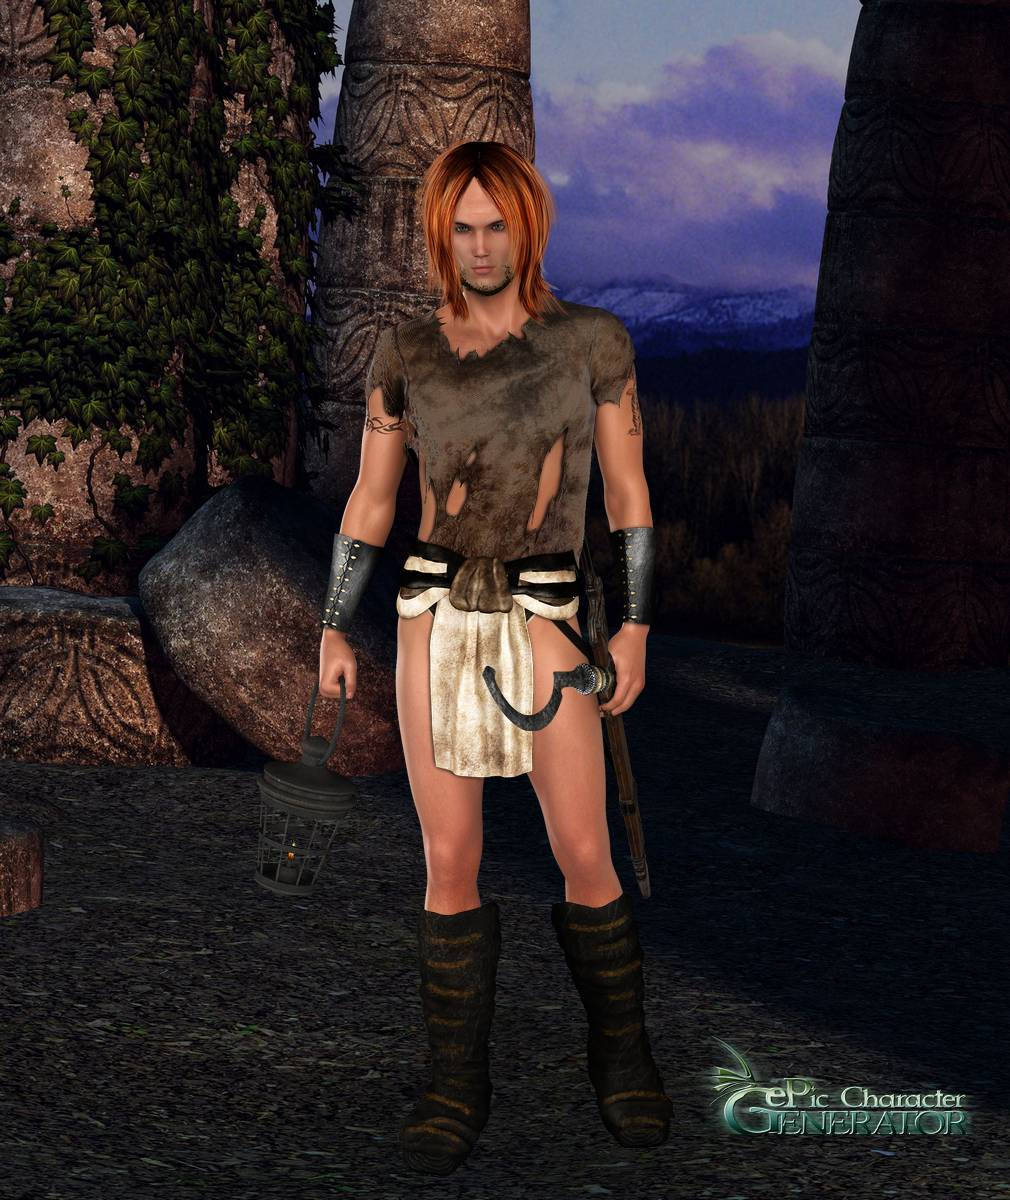 ePic Character Generator Season 2 Male Adventurer Screenshot 03